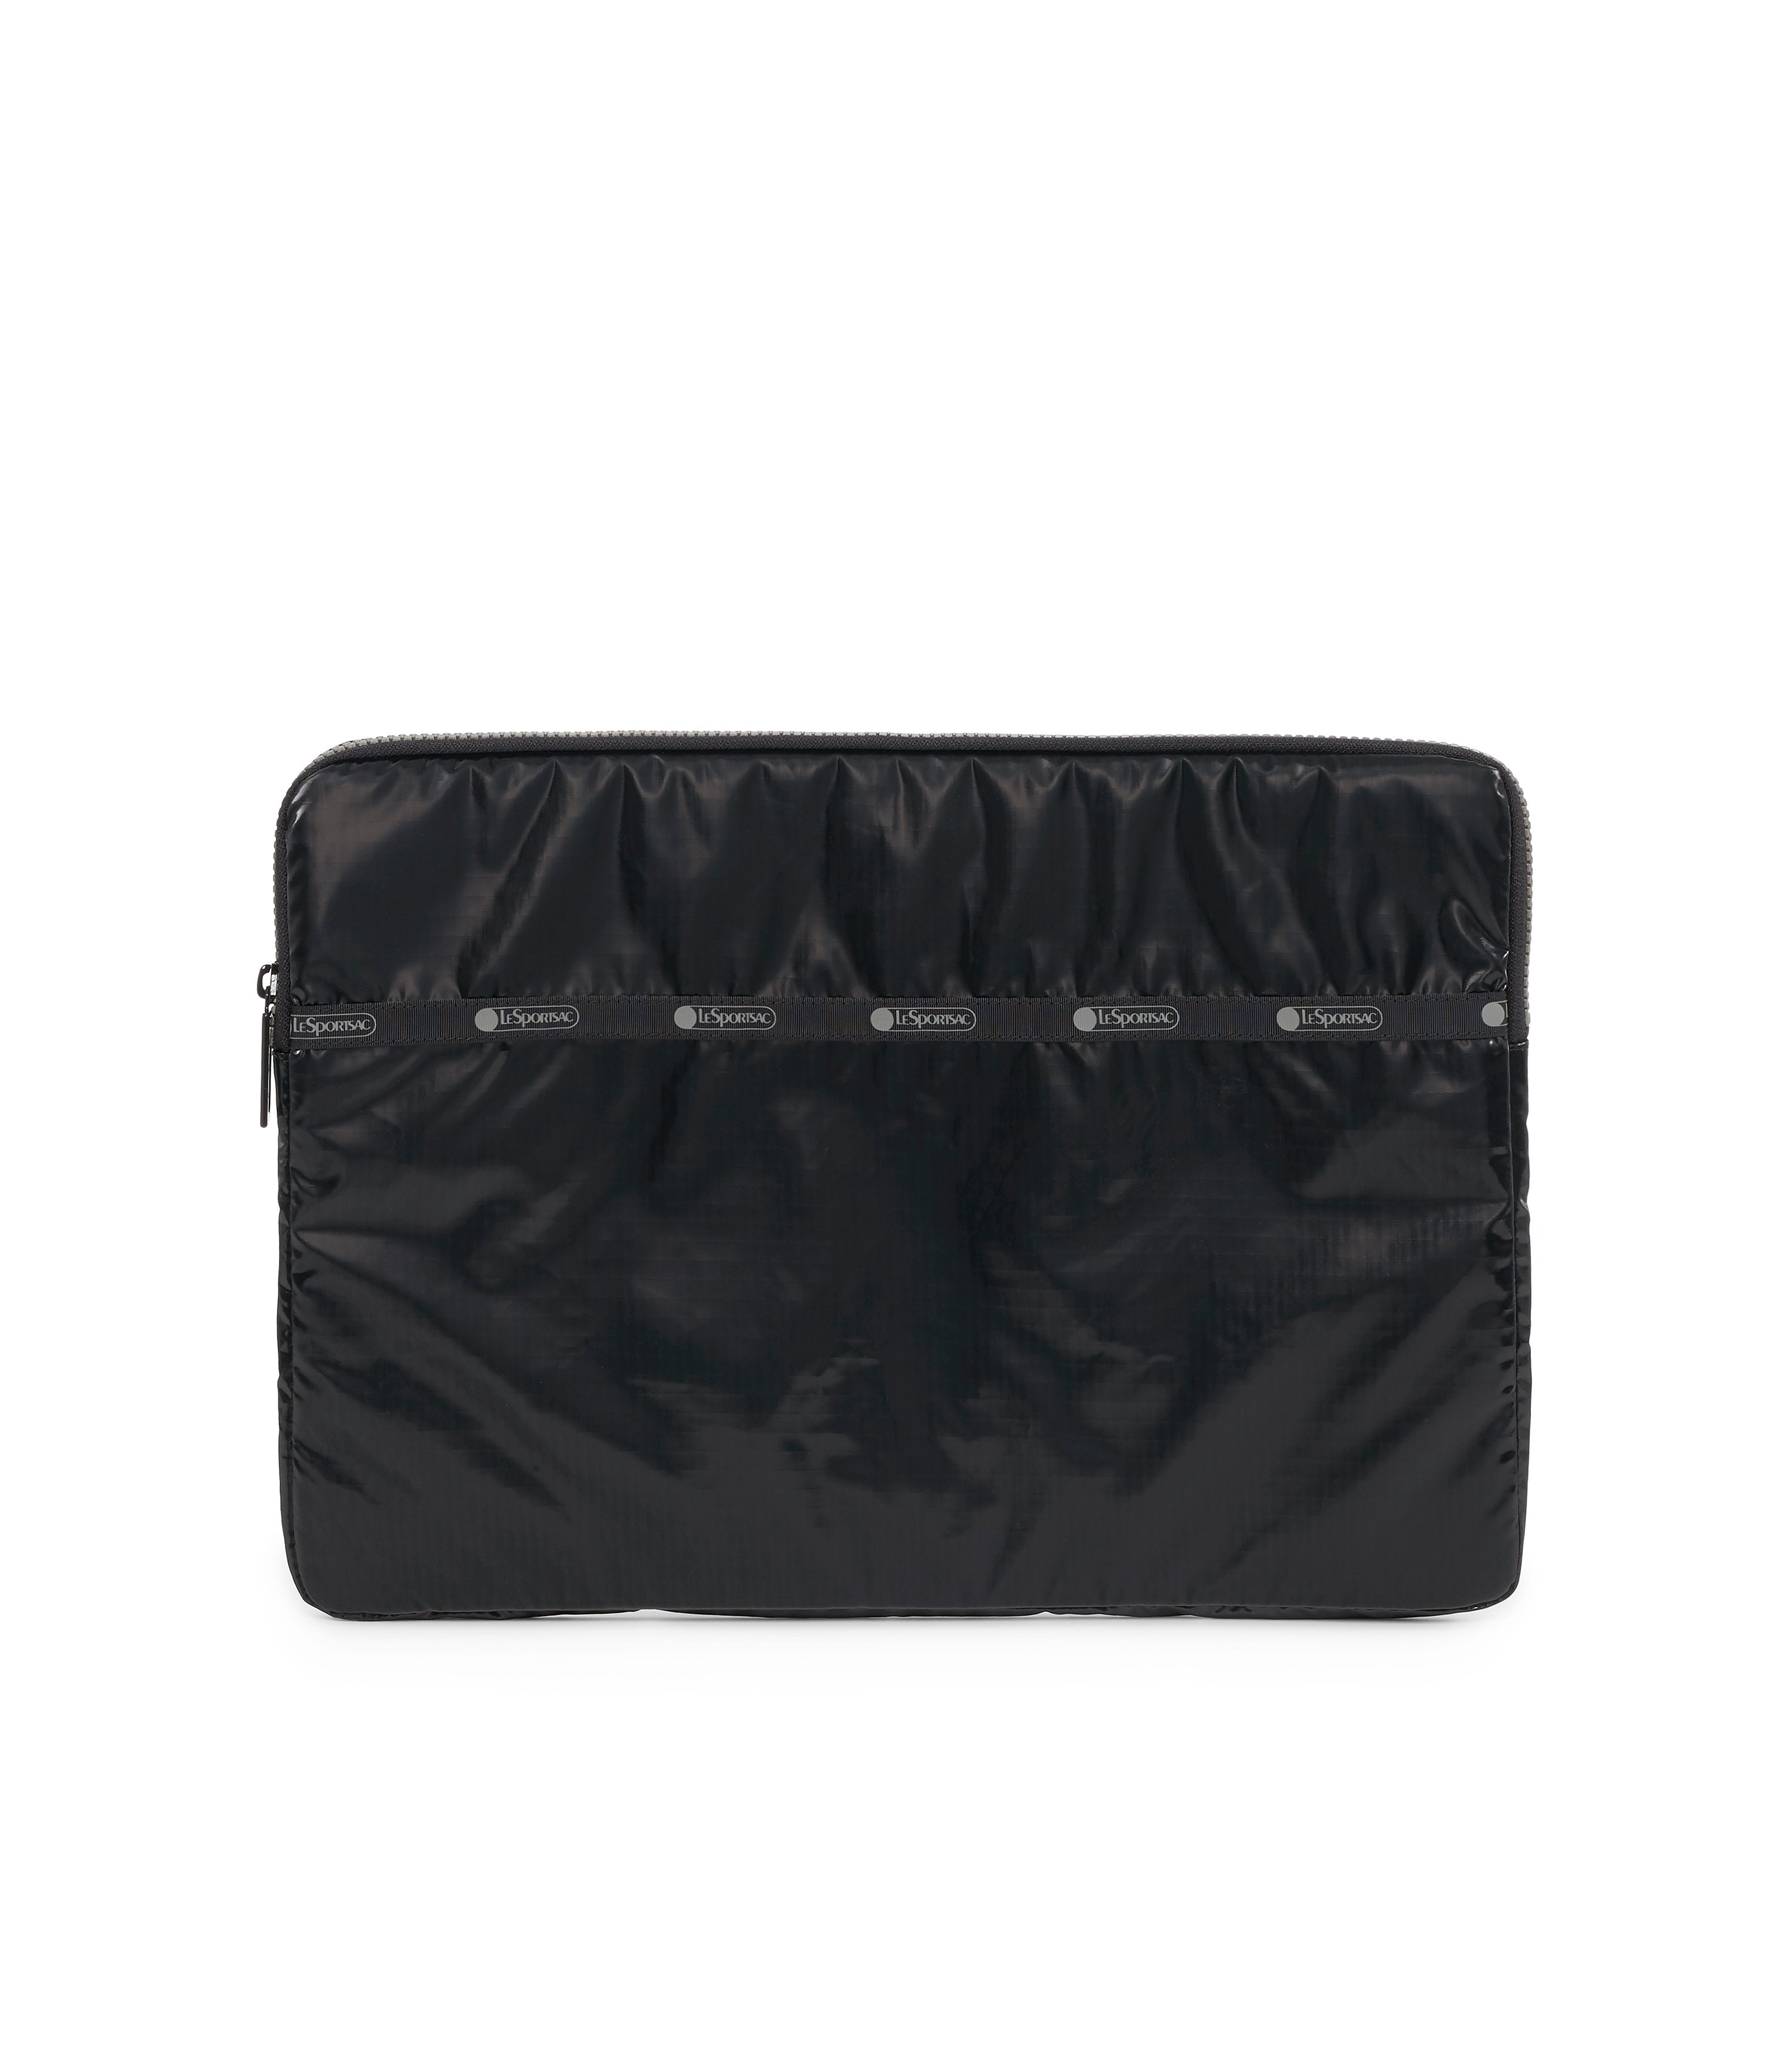 15 Inch Laptop Sleeve, Tech, Computer Sleeves, LeSportsac, Black Arrow Liquid Patent